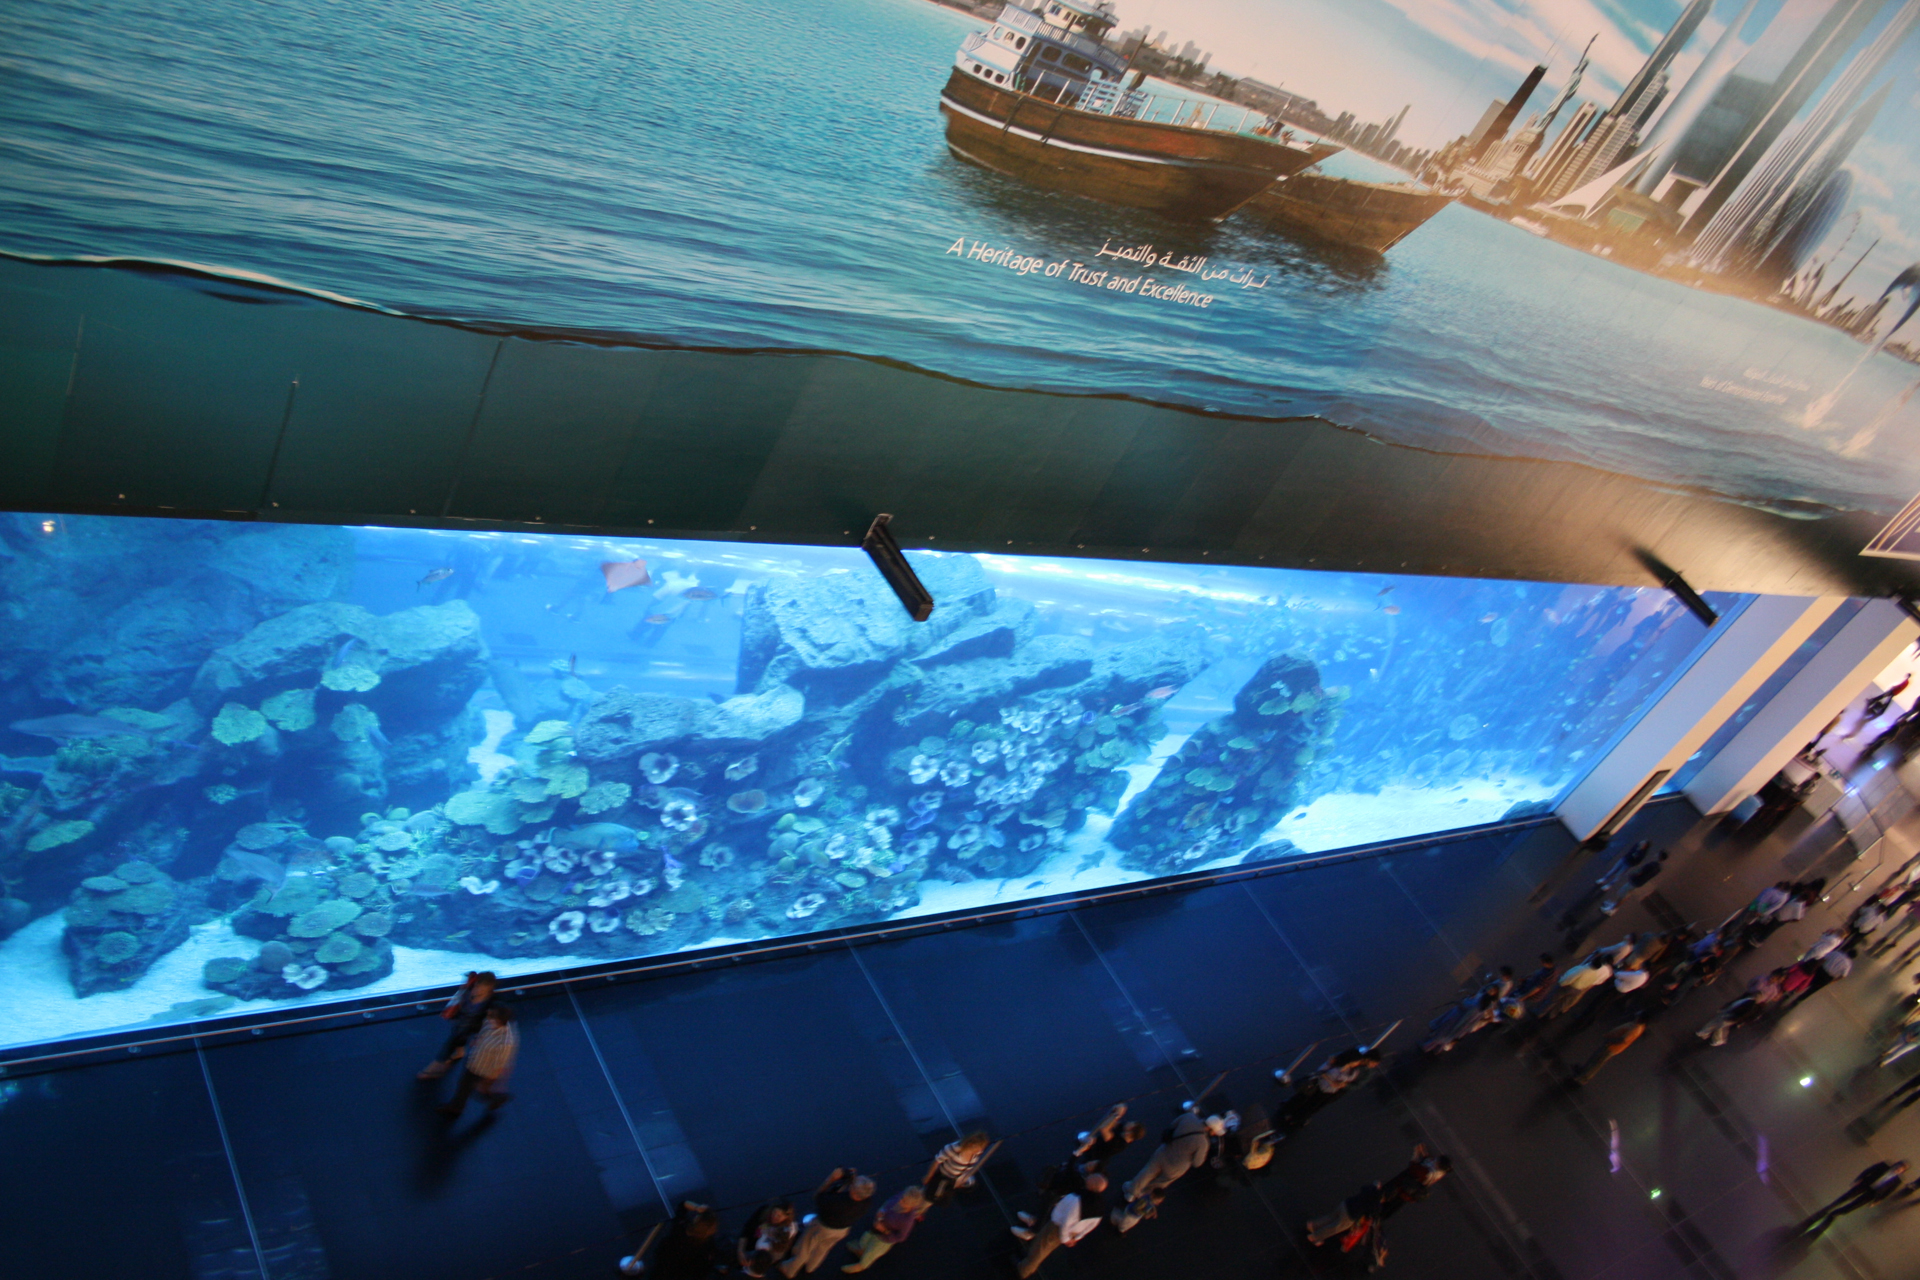 Dubai Mall Indoor Aquarium